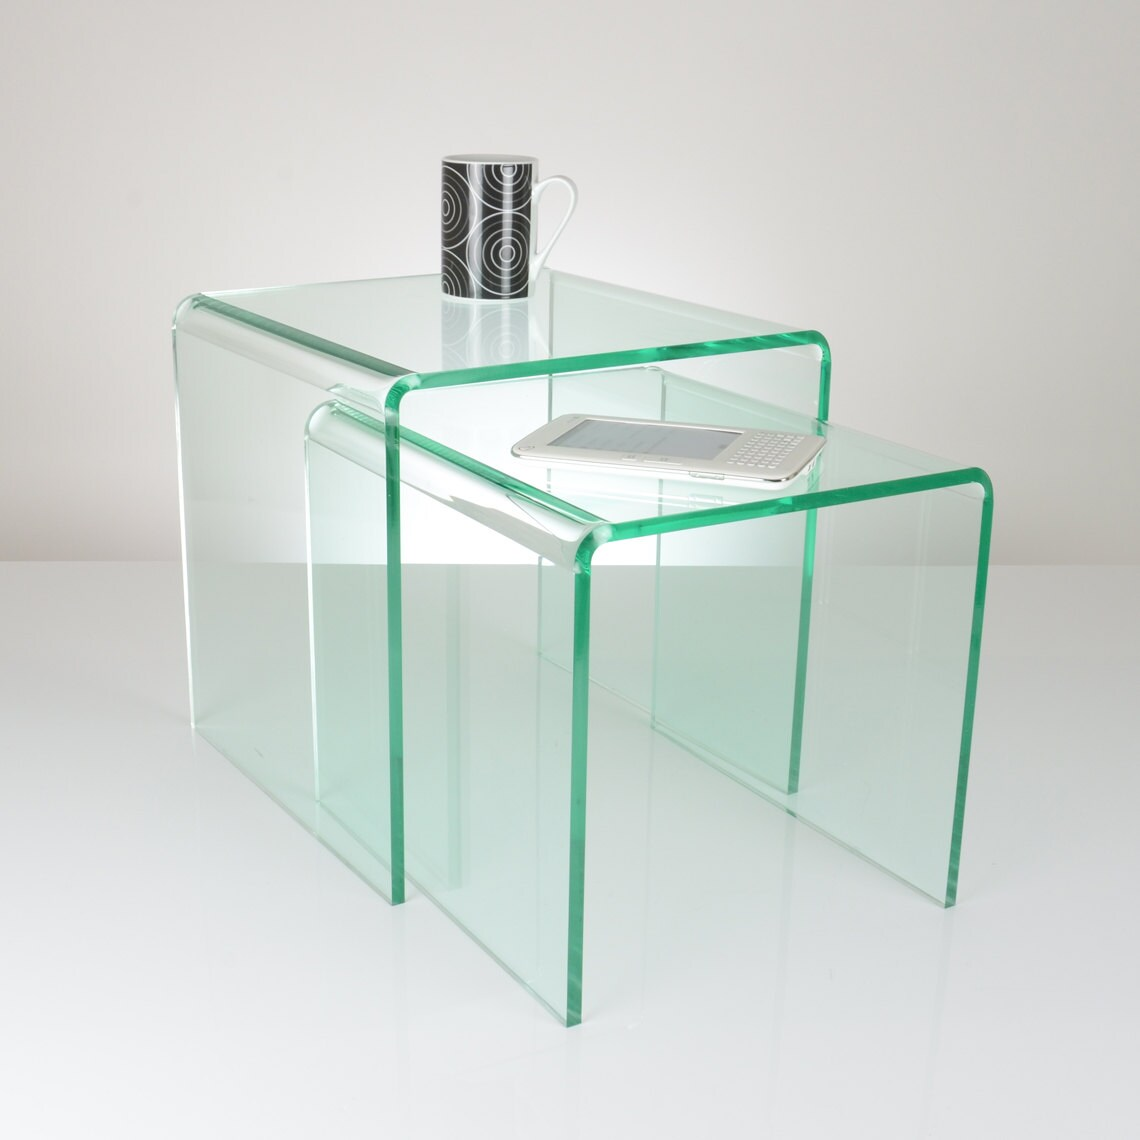 Glass Effect Acrylic Nest Of Tables Premium Acrylic Made